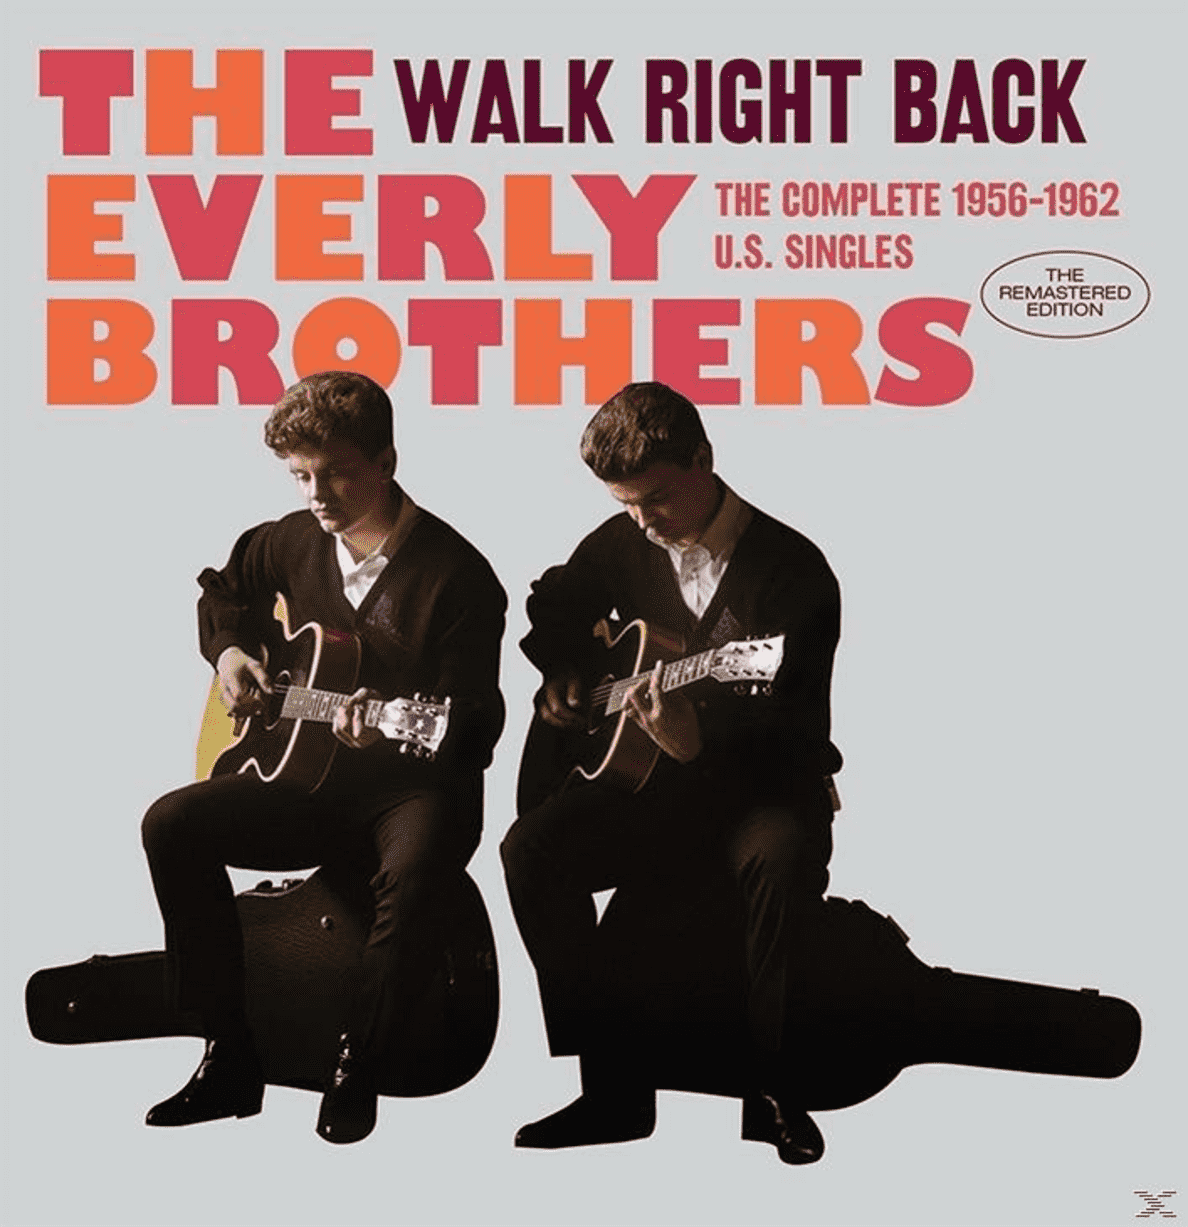 WALK RIGHT BACK THE COMPLETE 1956-62 U.S.SINGLES The Everly Brothers auf CD